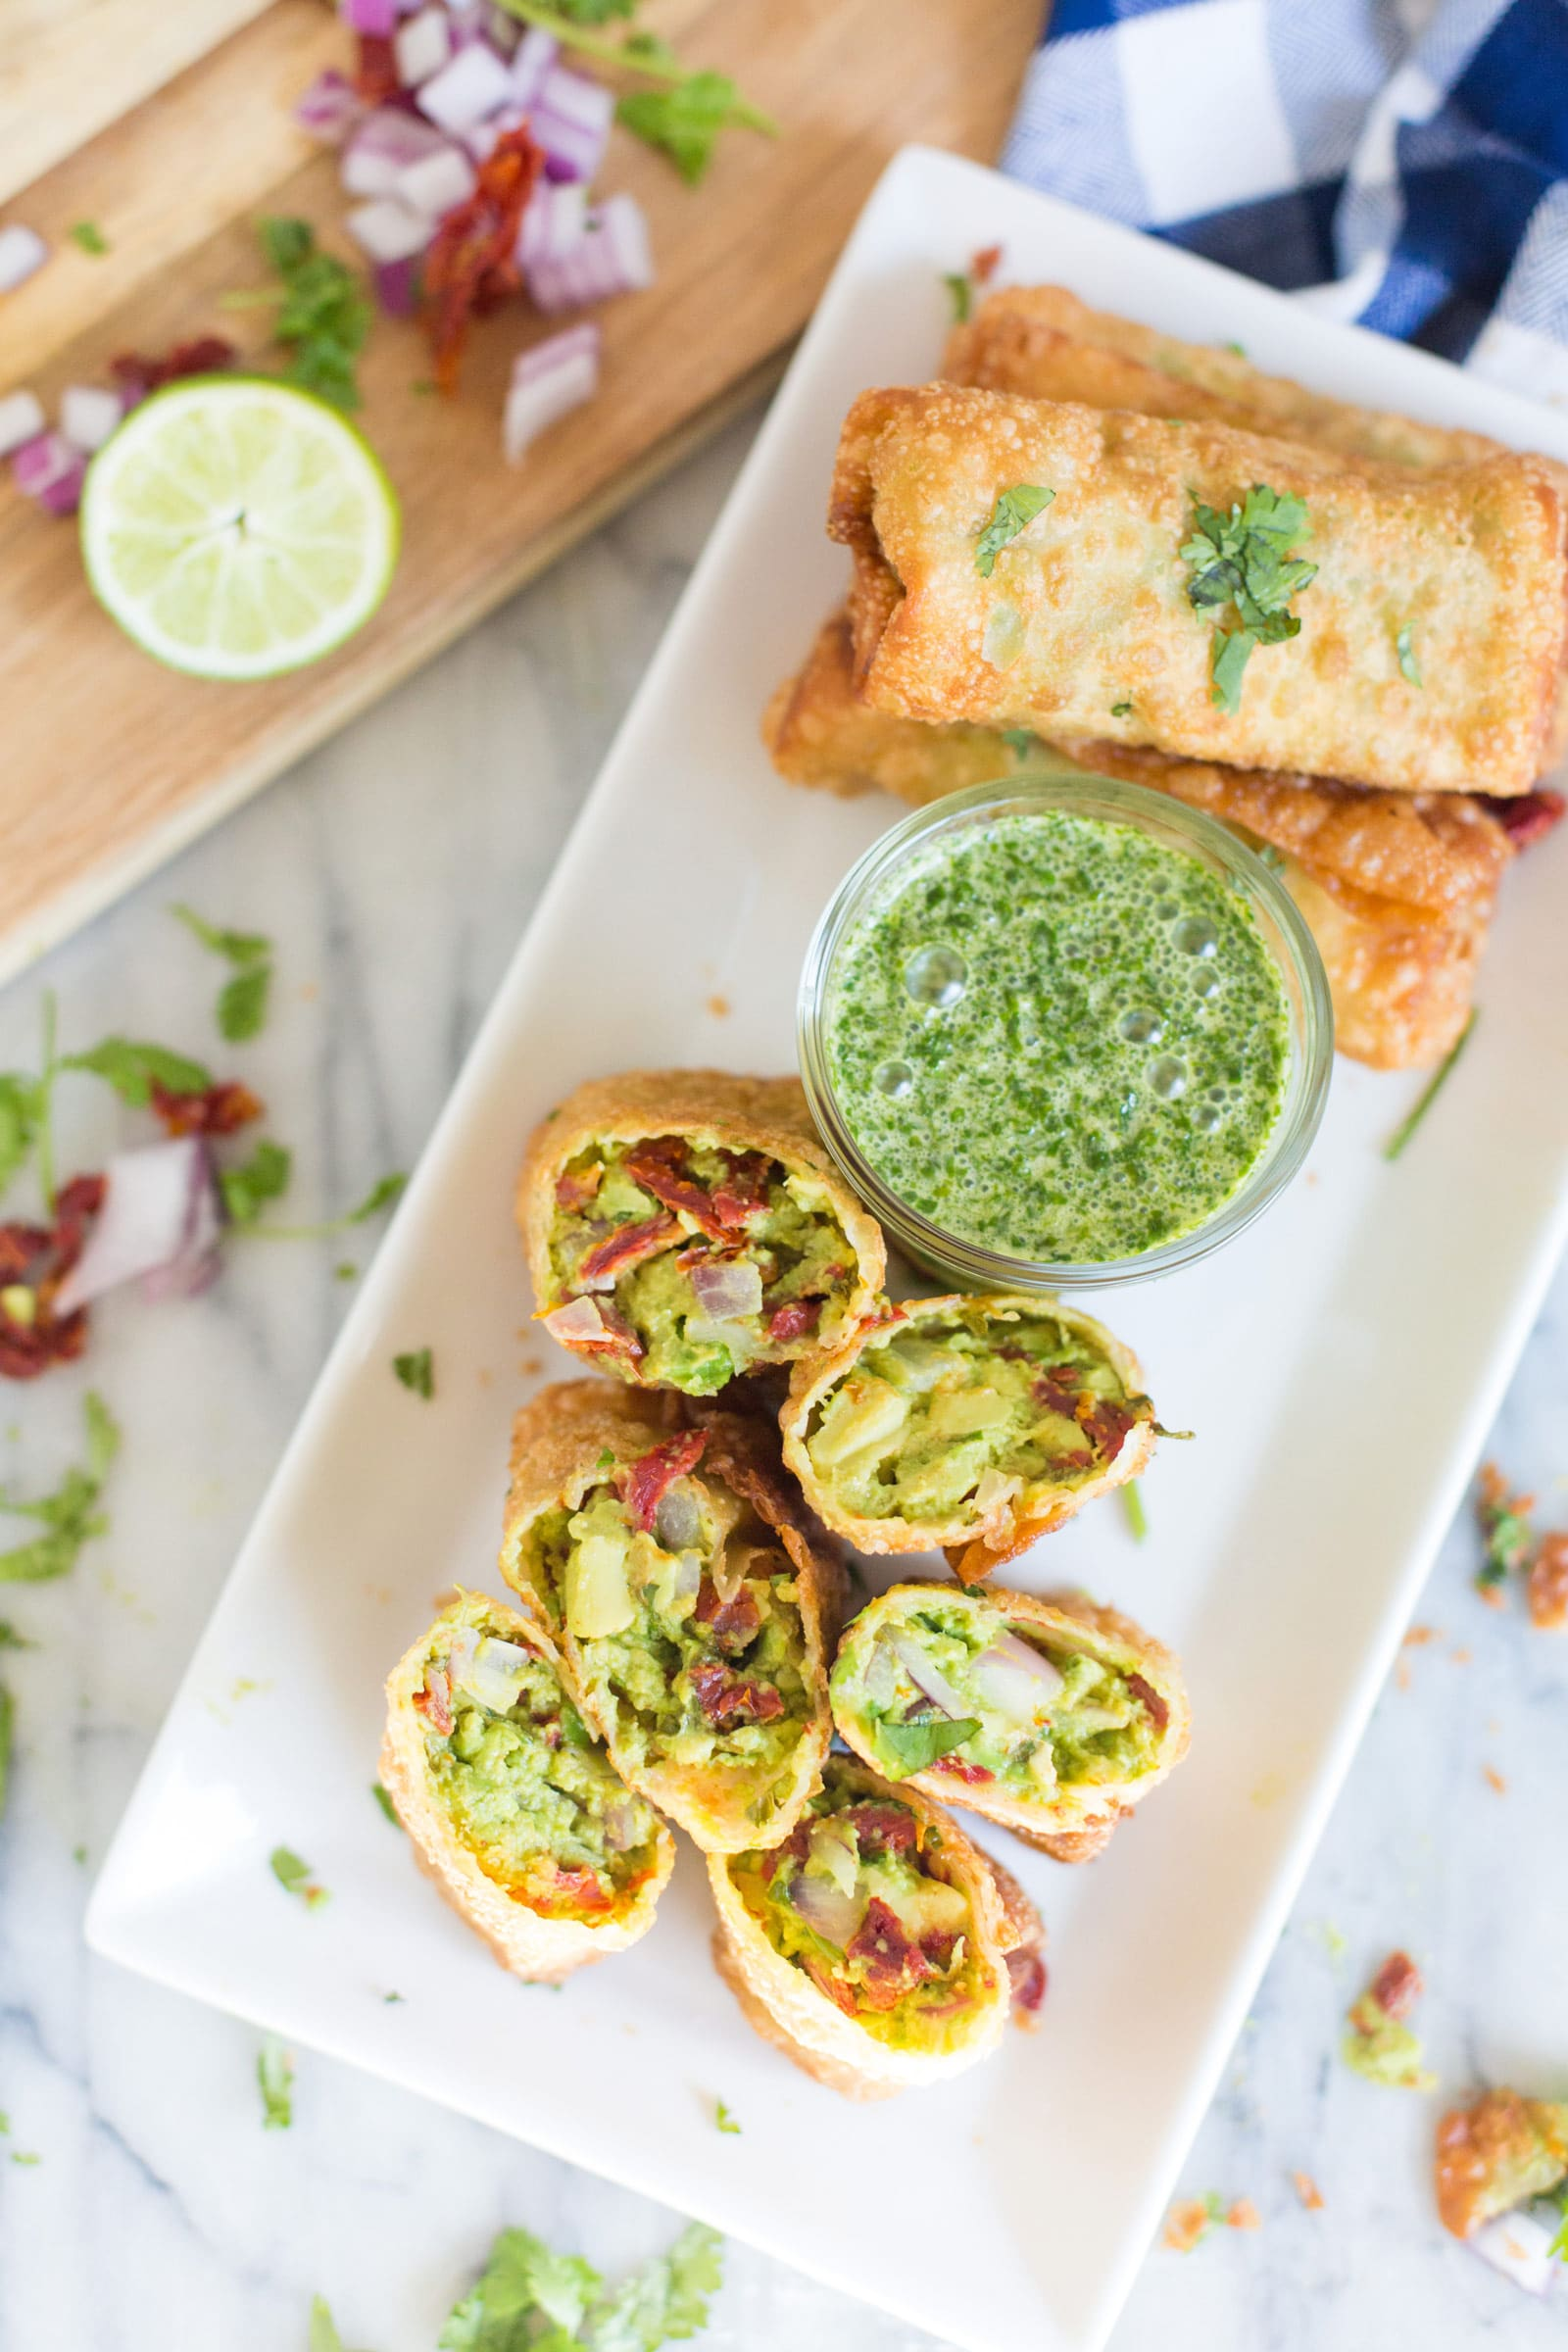 Copycat Avocado Egg Rolls | A copycat of The Cheesecake Factory's avocado egg rolls, this recipe is loaded with amazing flavors and served with the most delicious honey cilantro dipping sauce!  Not a spot on copycat, but one made with easy to find ingredients! | https://www.thechunkychef.com | #appetizer #copycat #eggroll #avocado #party